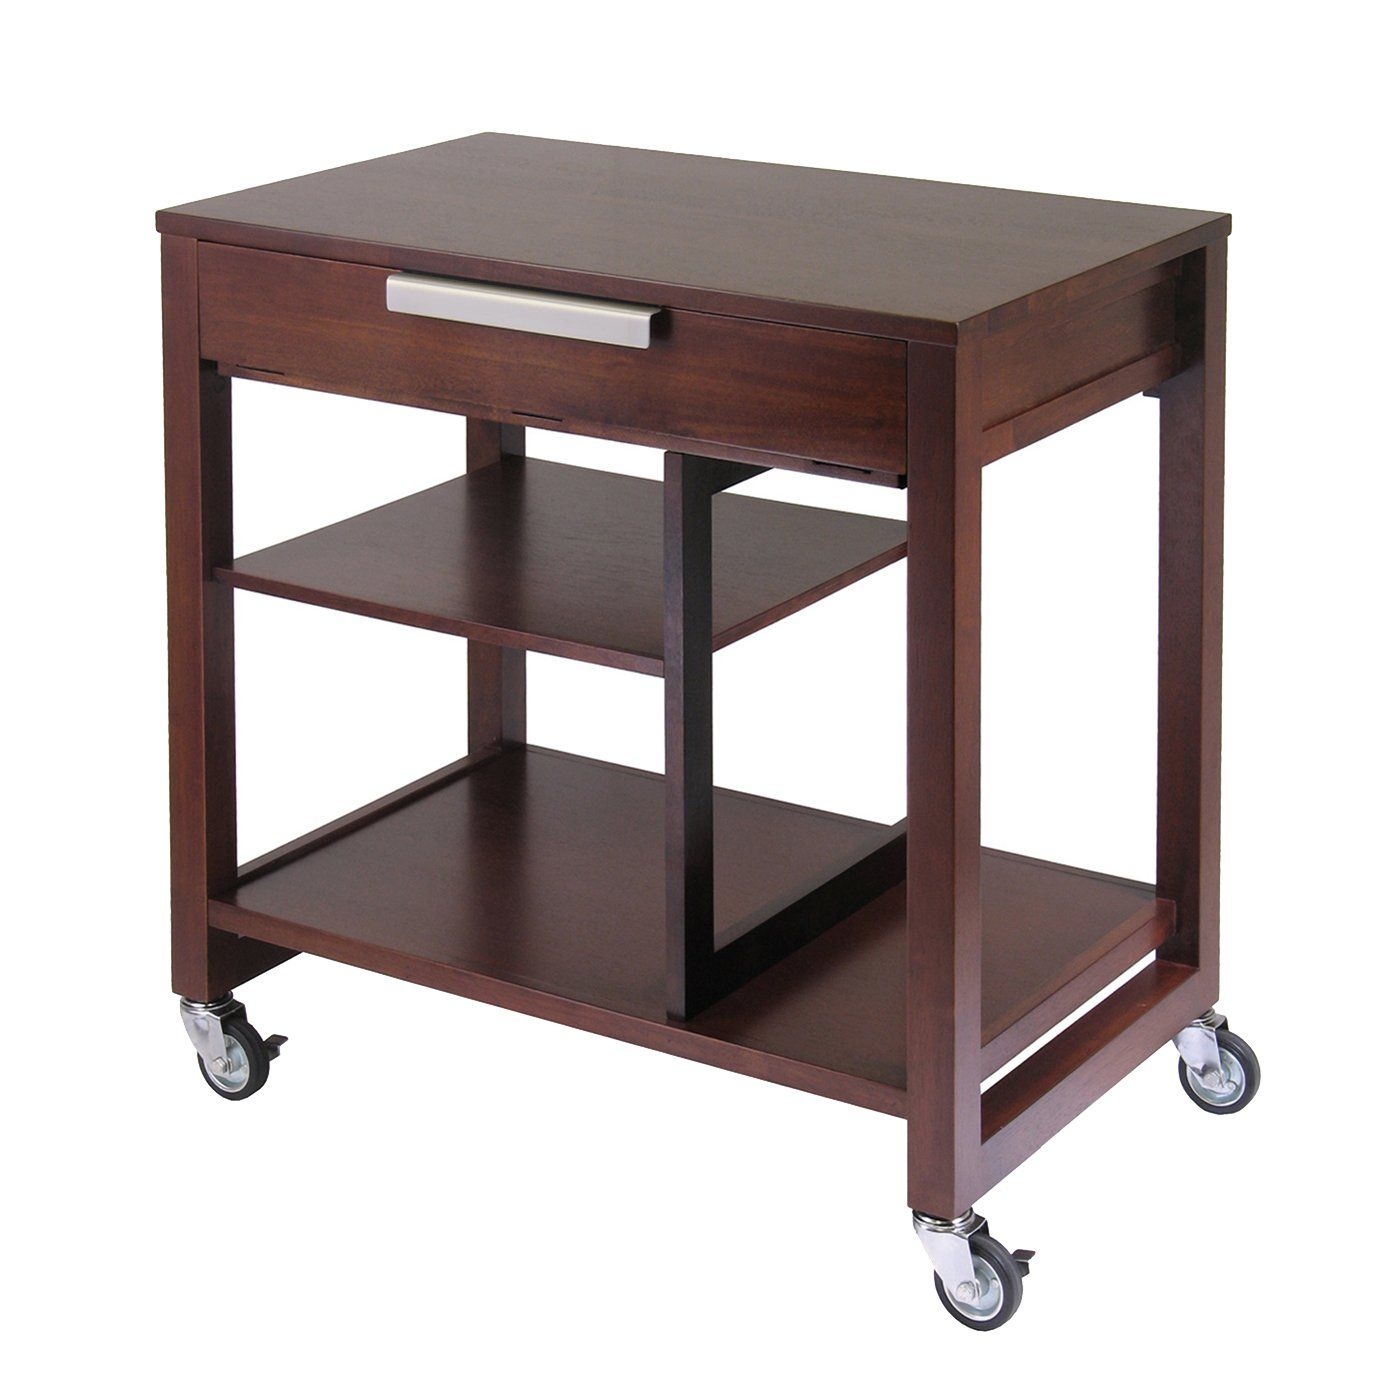 Winsome Wood puter Desk Lowe s Canada Den